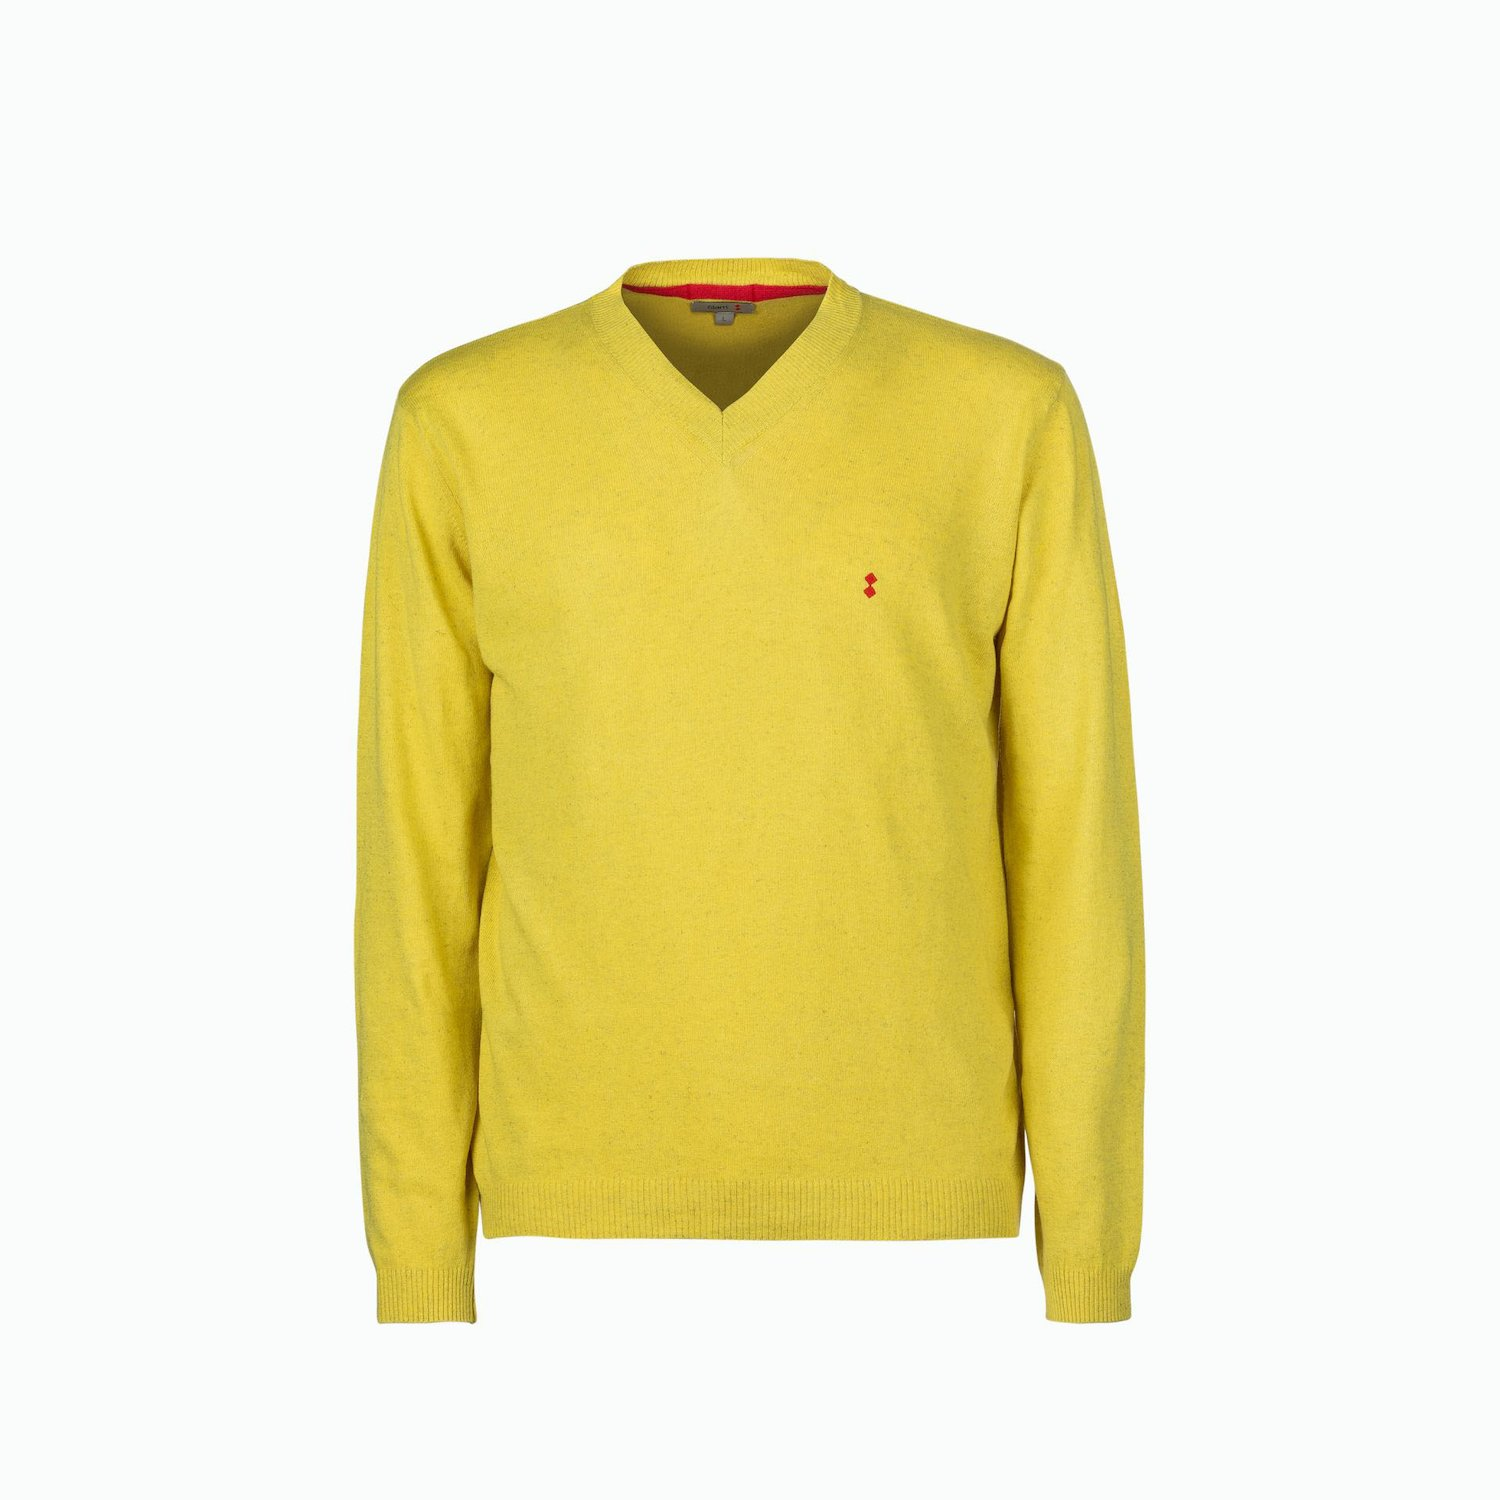 C203 Jumper - Citronelle